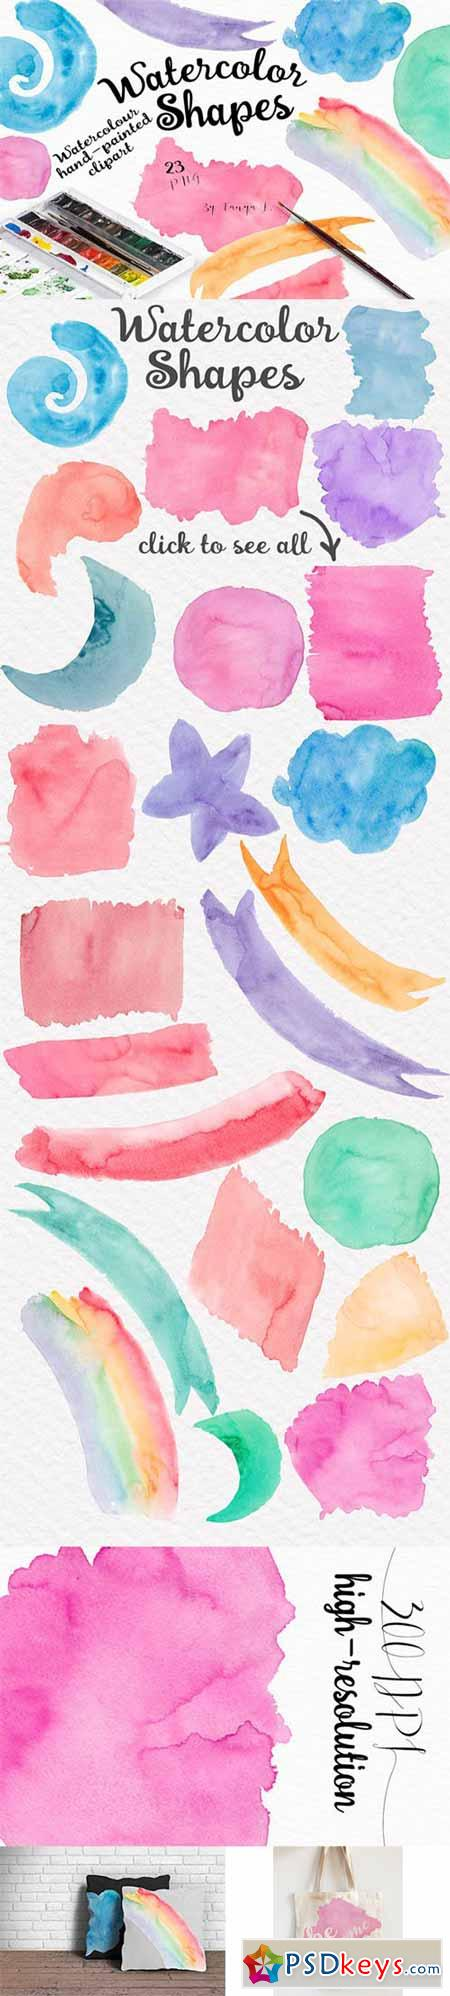 Watercolor Shapes Collection 558118